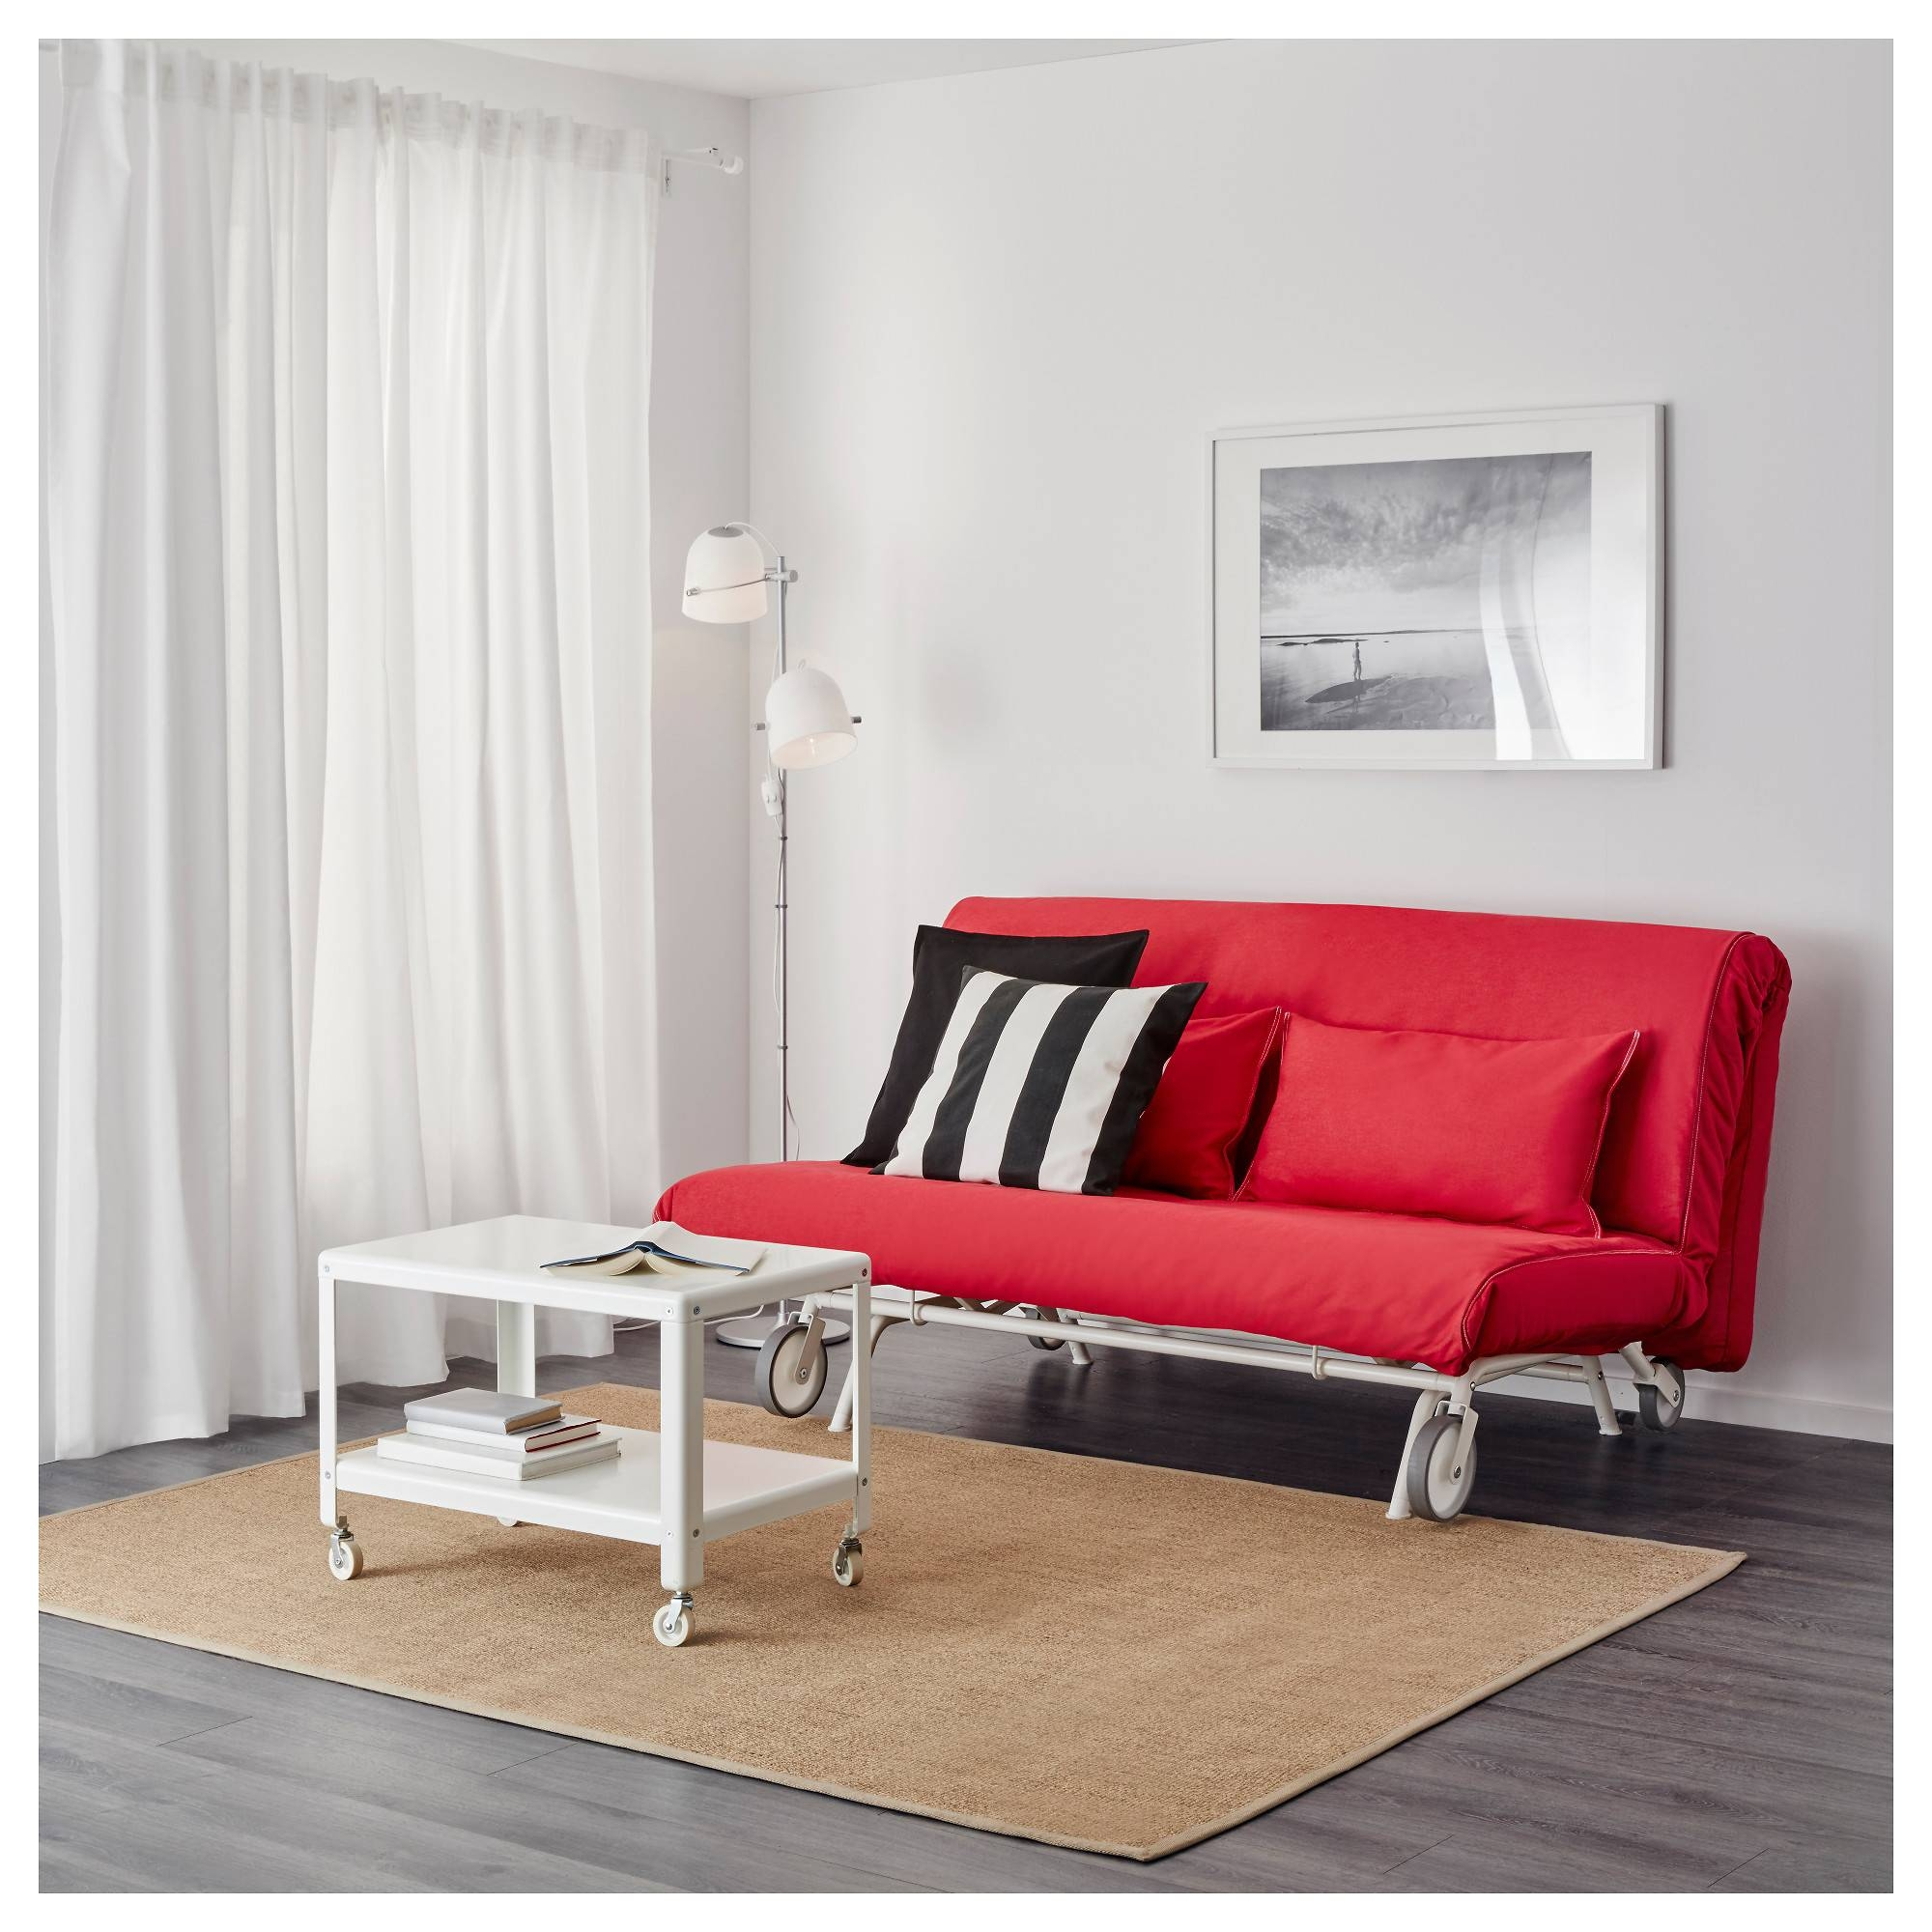 2020 Latest Red Sofa Beds Ikea